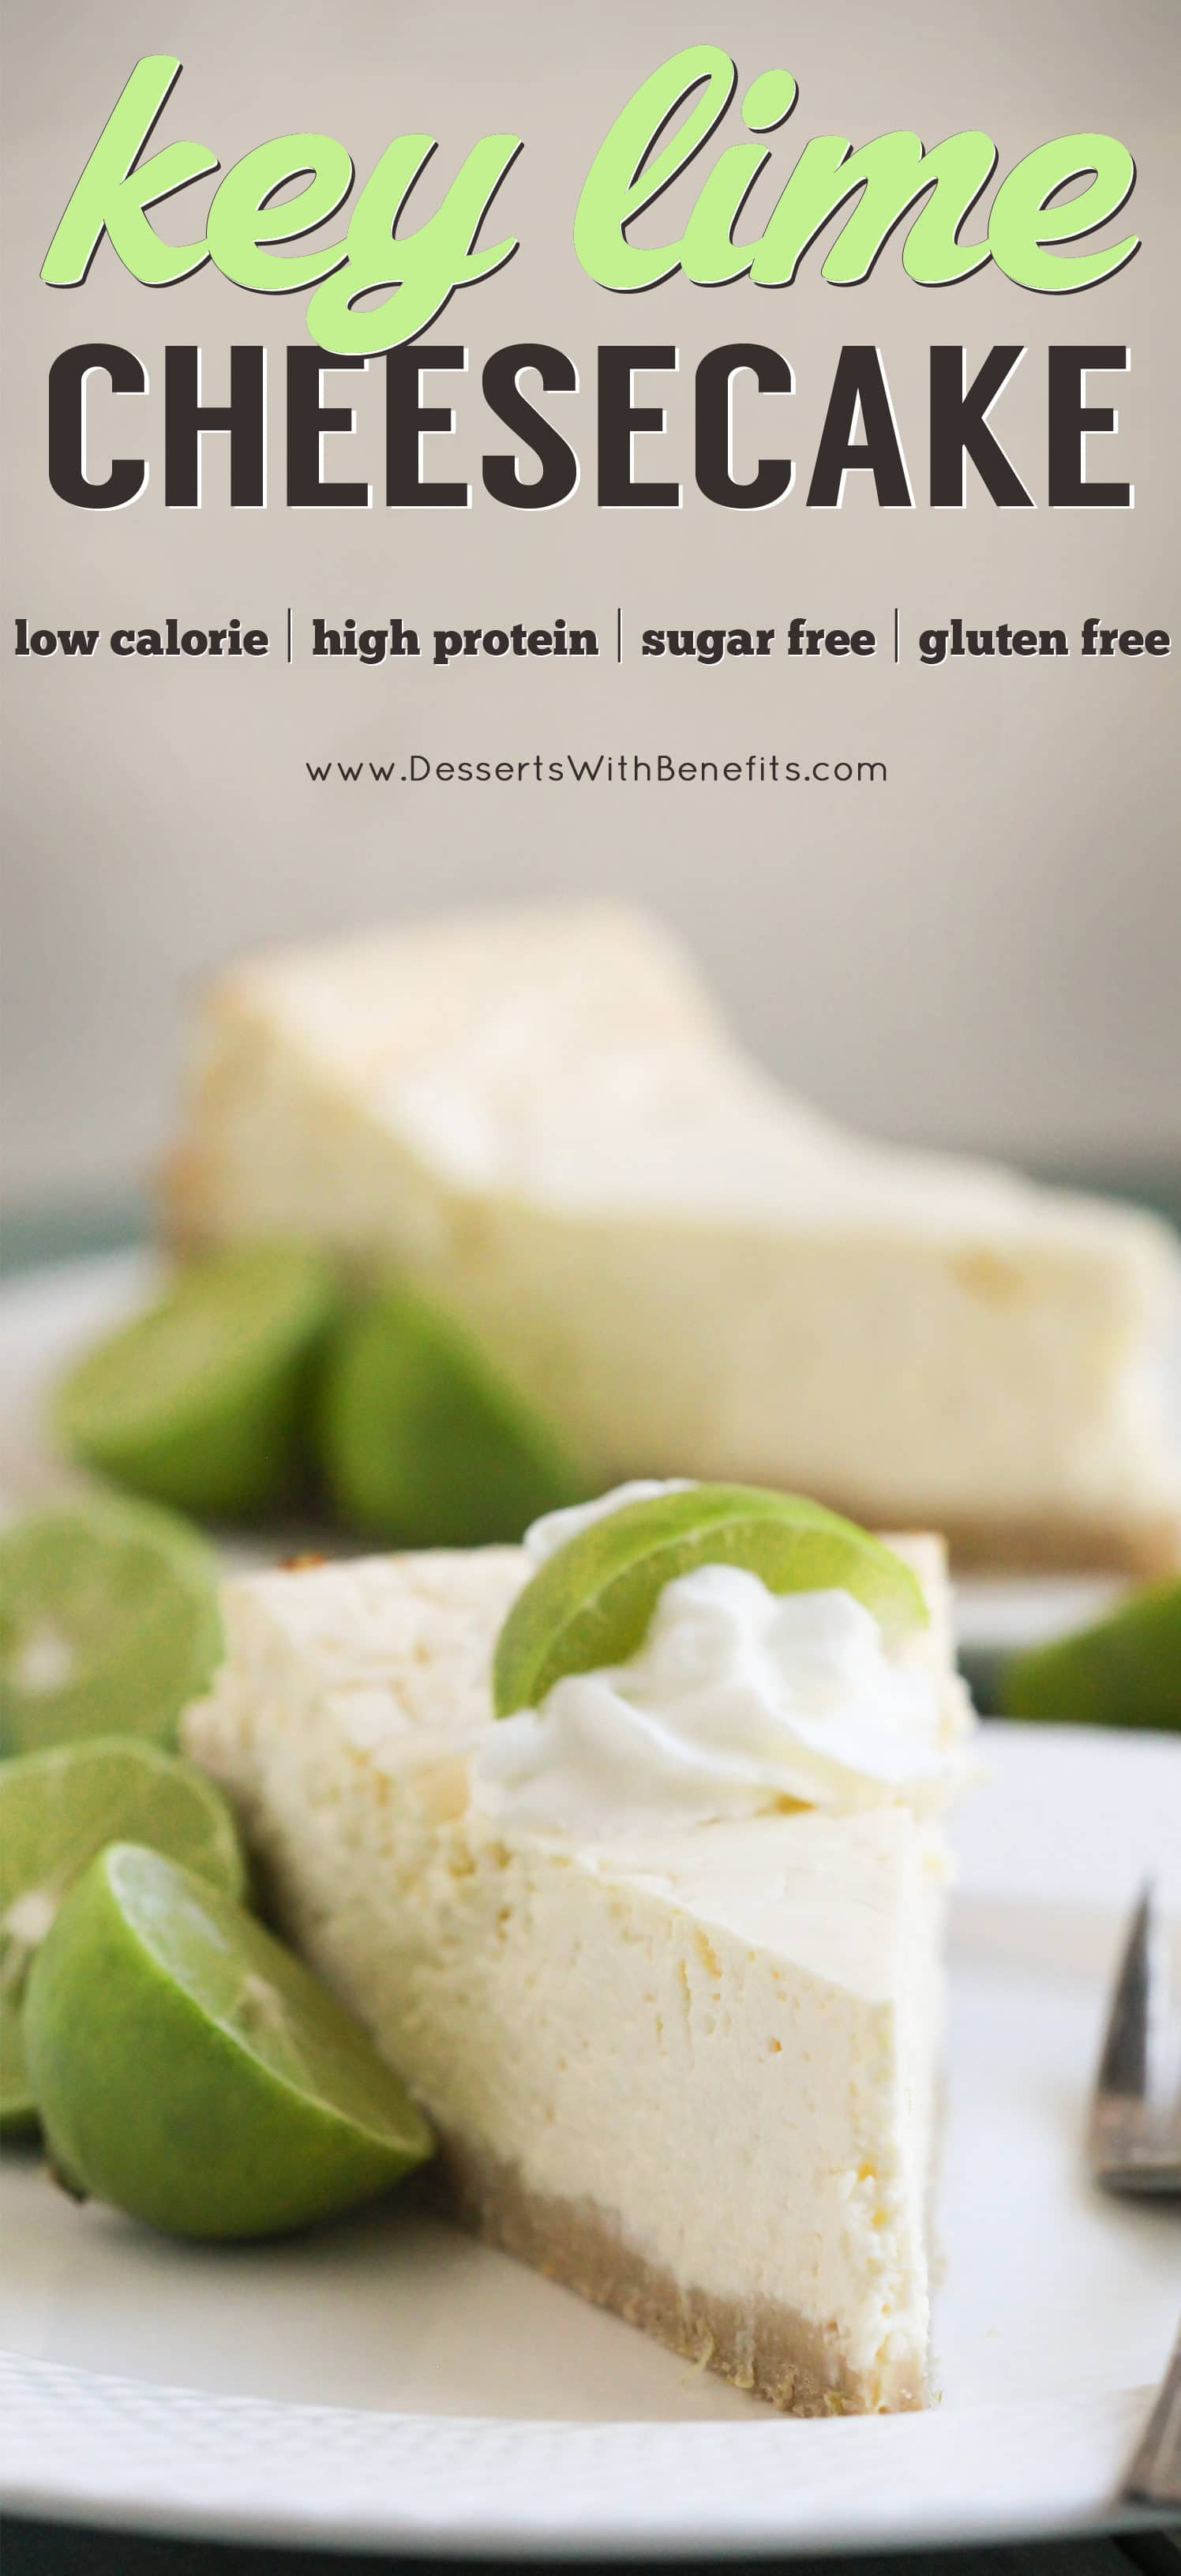 This Healthy Key Lime Cheesecake tastes like Key Lime Pie but in CHEESECAKE form! Each bite is sweet, refreshing, and delicious, you'd never suspect it's sugar free, gluten free, and high protein. -- Healthy Dessert Recipes with sugar free, low calorie, low fat, high protein, gluten free, dairy free and vegan options at the Desserts With Benefits Blog (www.DessertsWithBenefits.com)